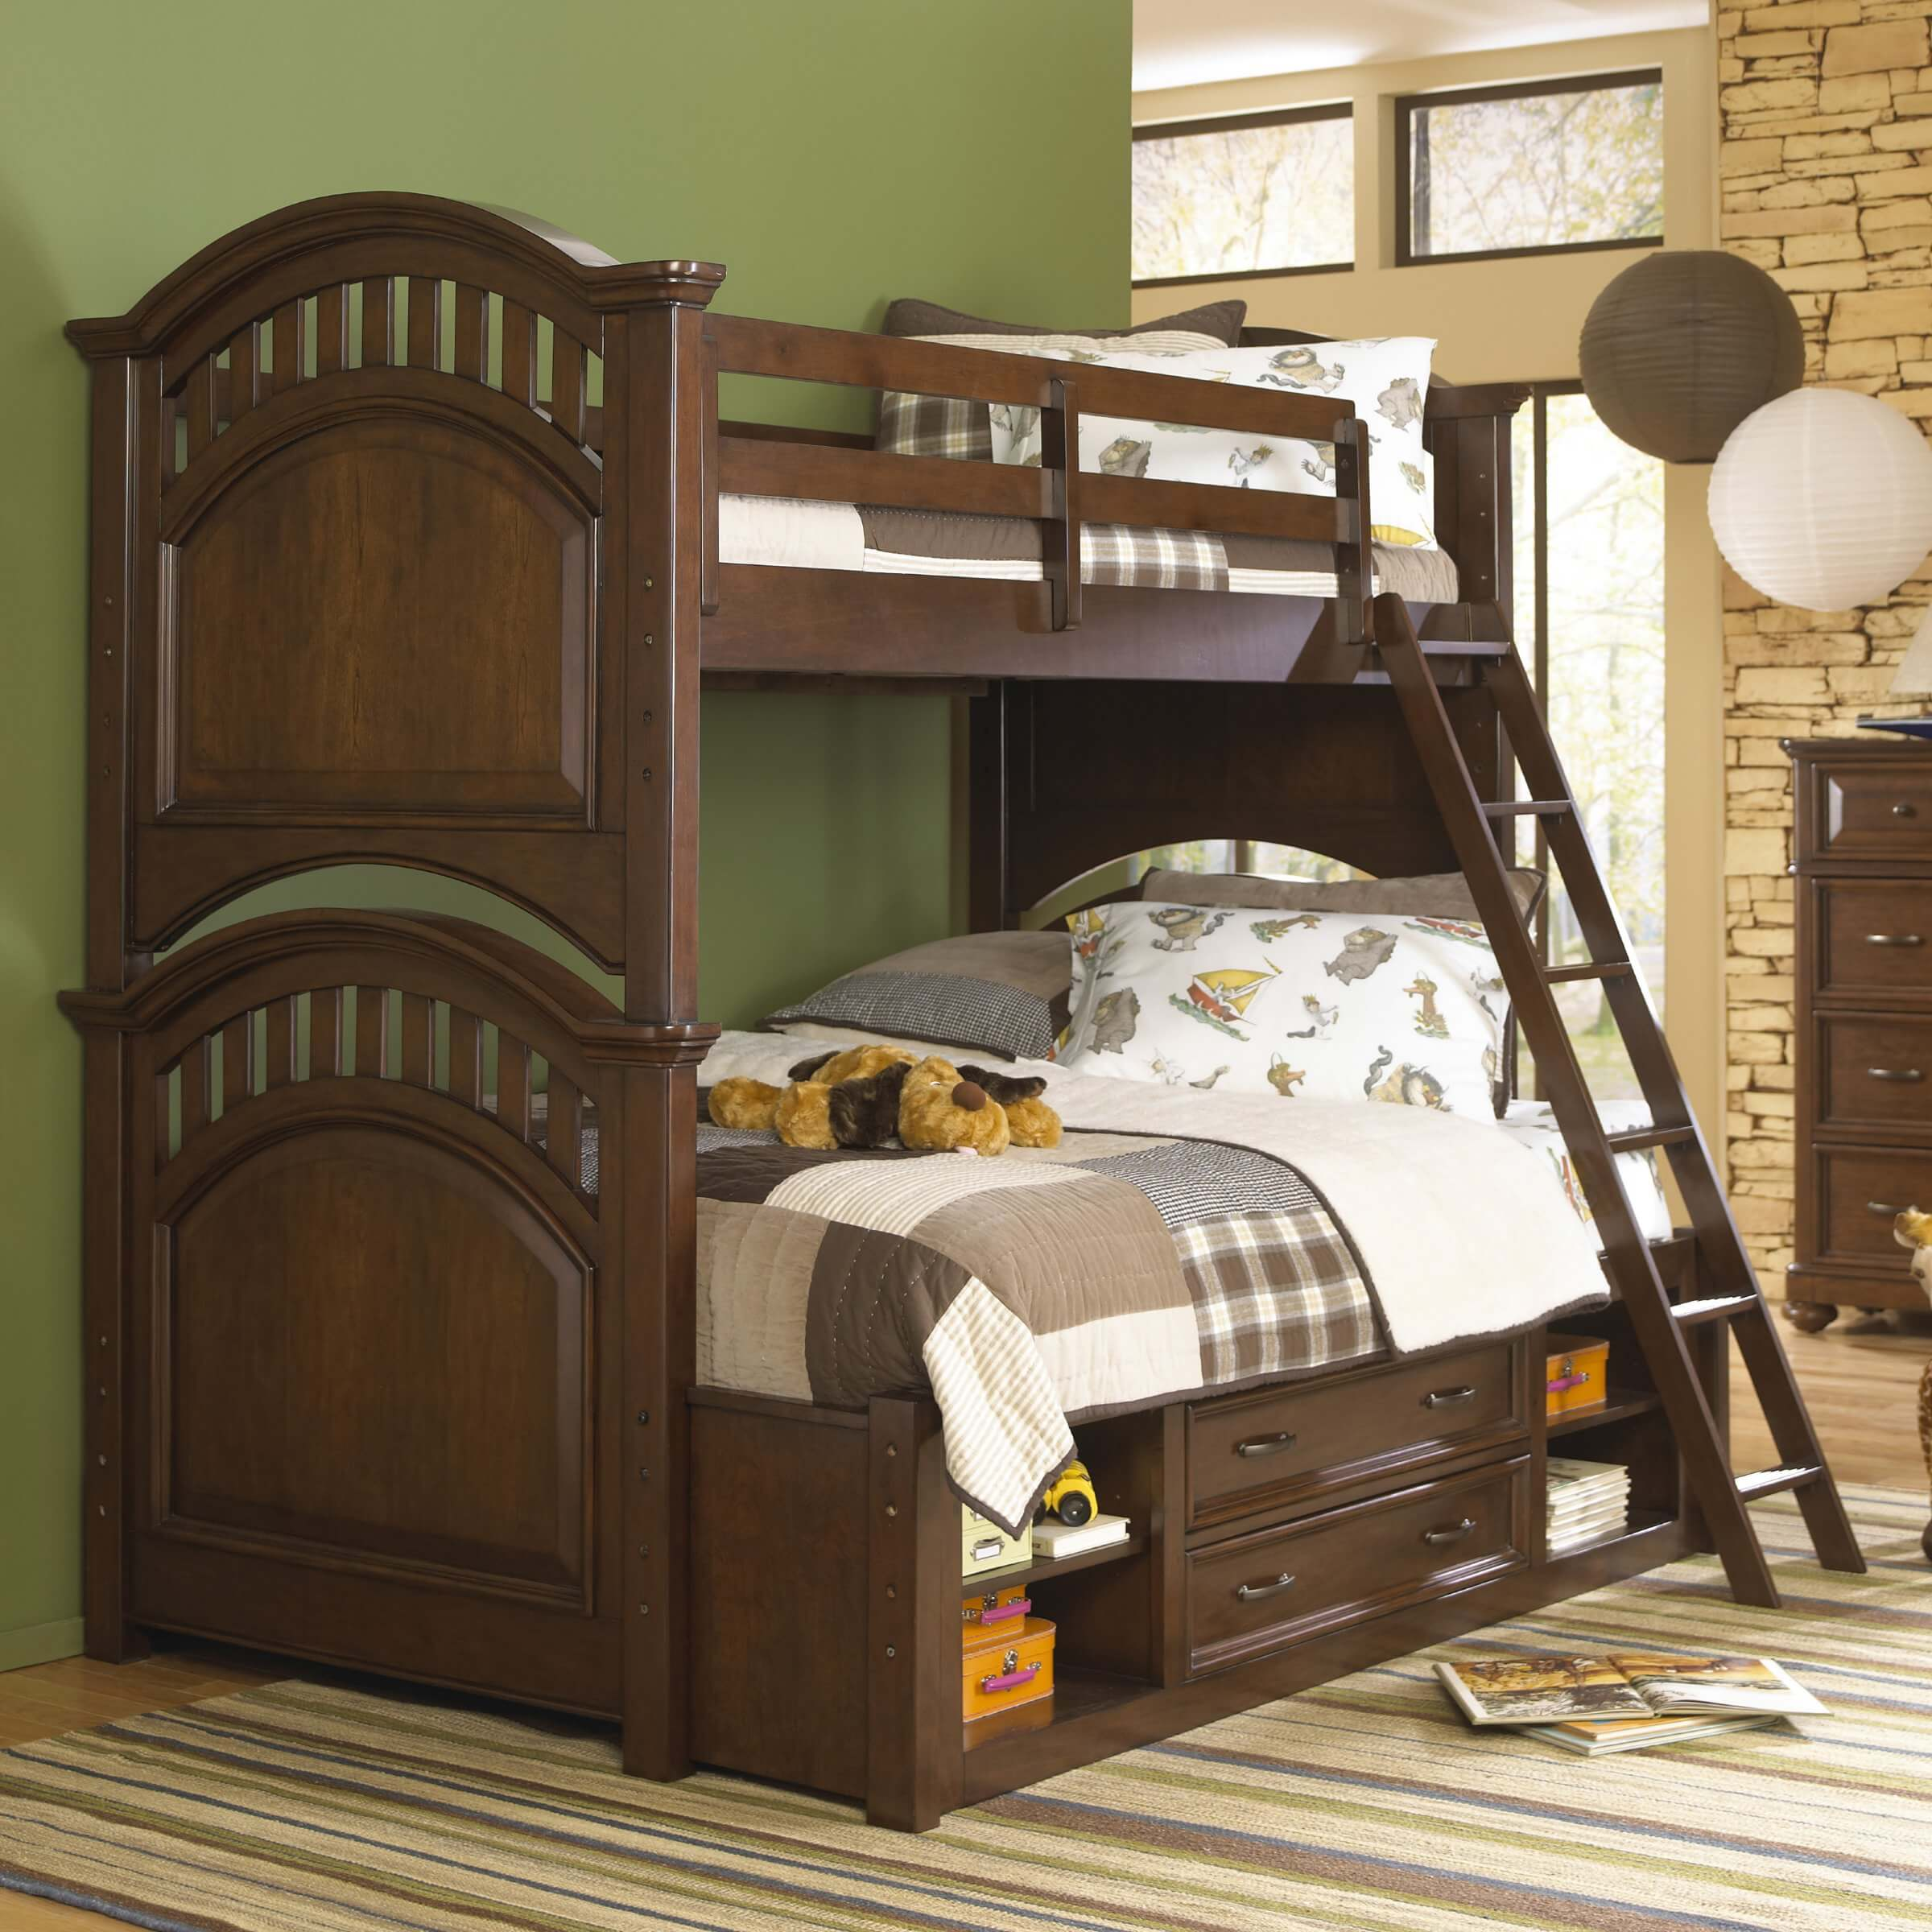 Top 10 Types Of Twin Over Full Bunk Beds Buying Guide